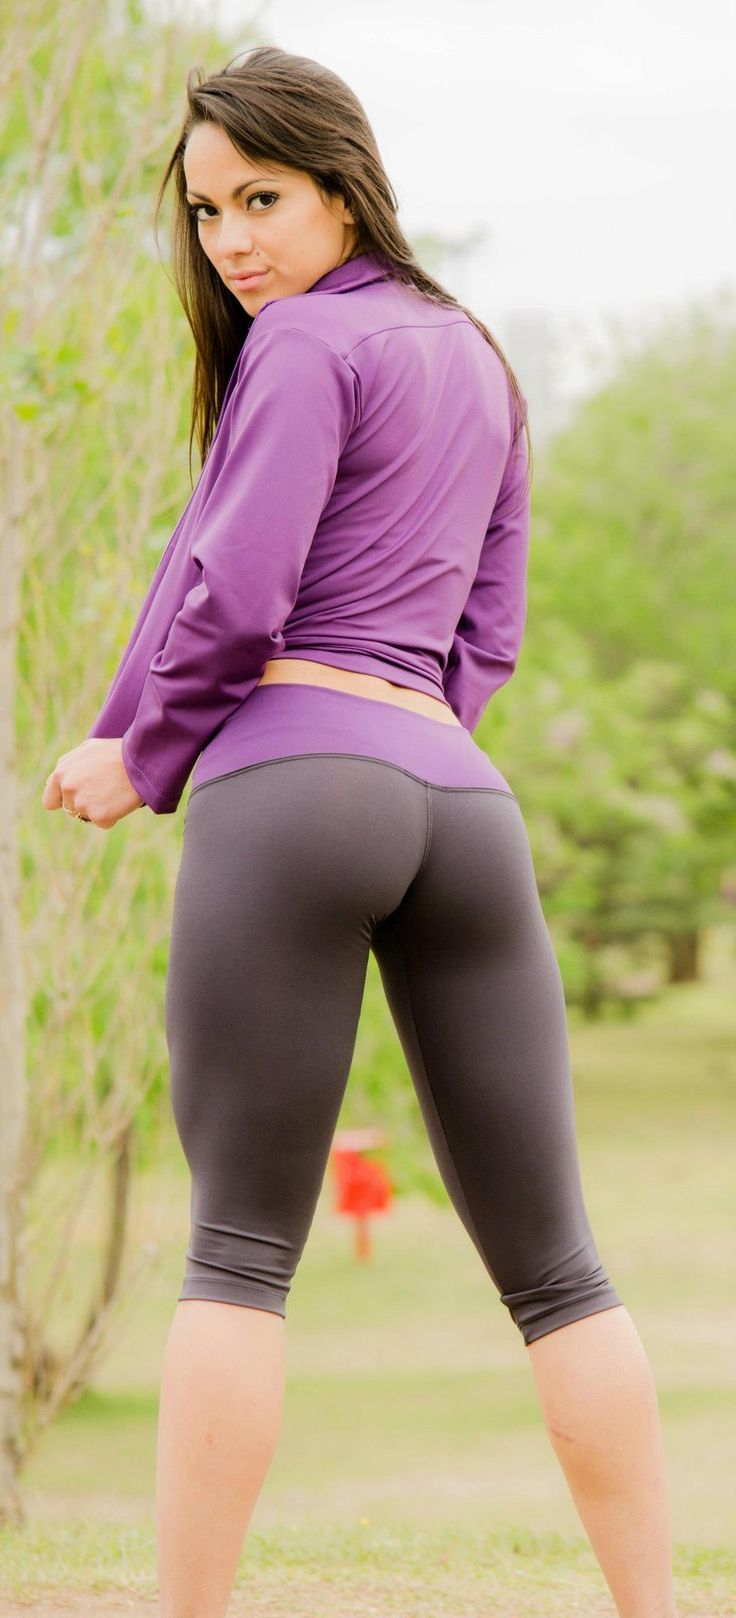 Yoga Pantyhose Sex F Sporty 113